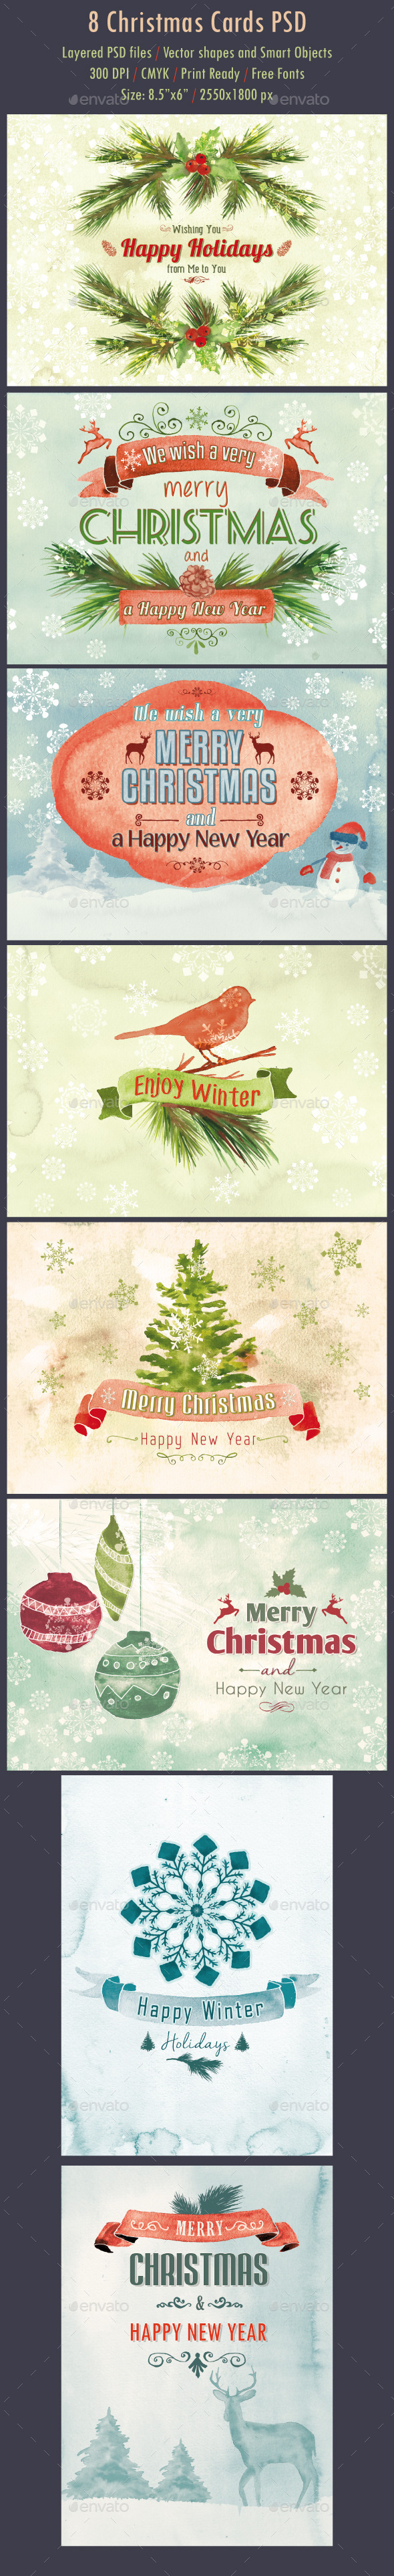 GraphicRiver 8 Watercolor Christmas Cards PSD 9461968